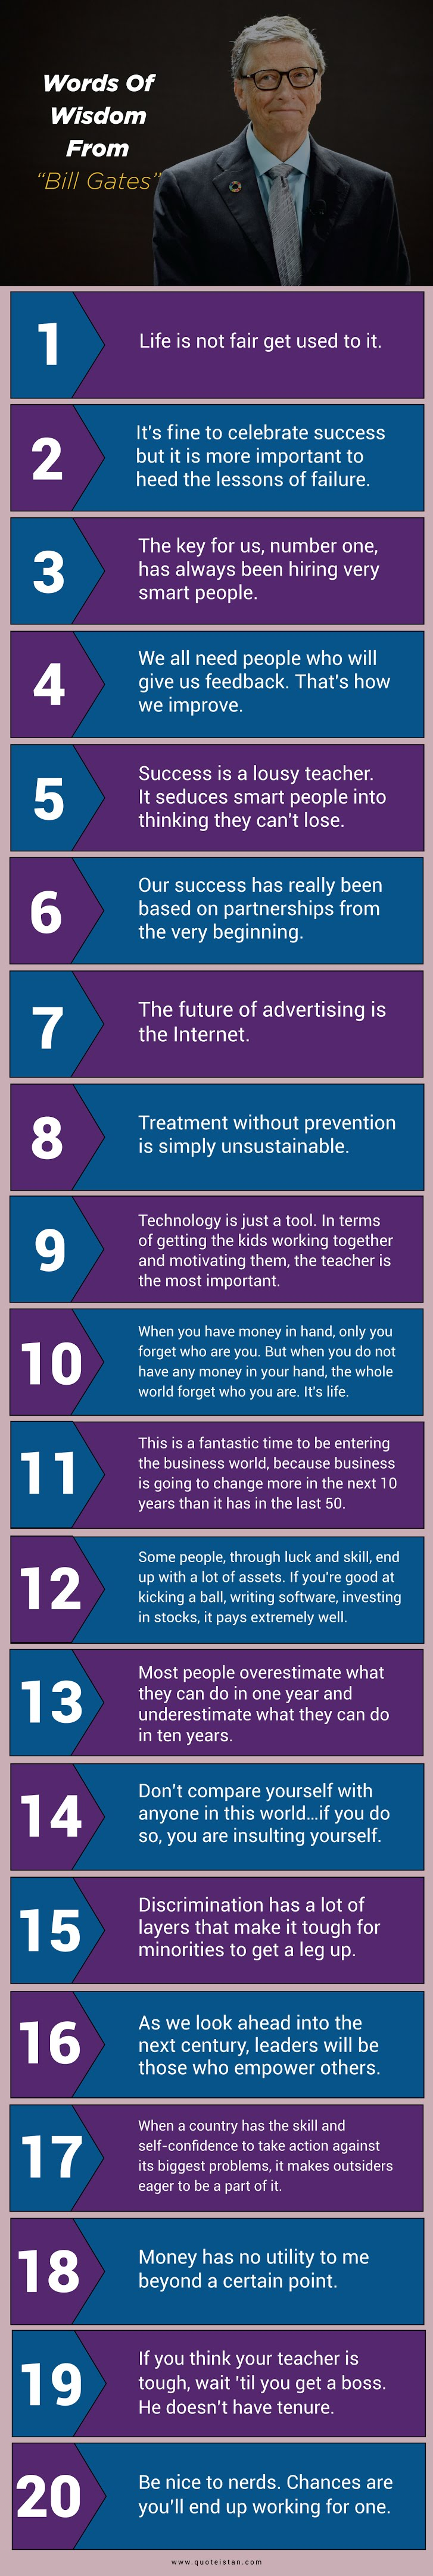 Words Of Wisdom From Bill Gates [infographic]